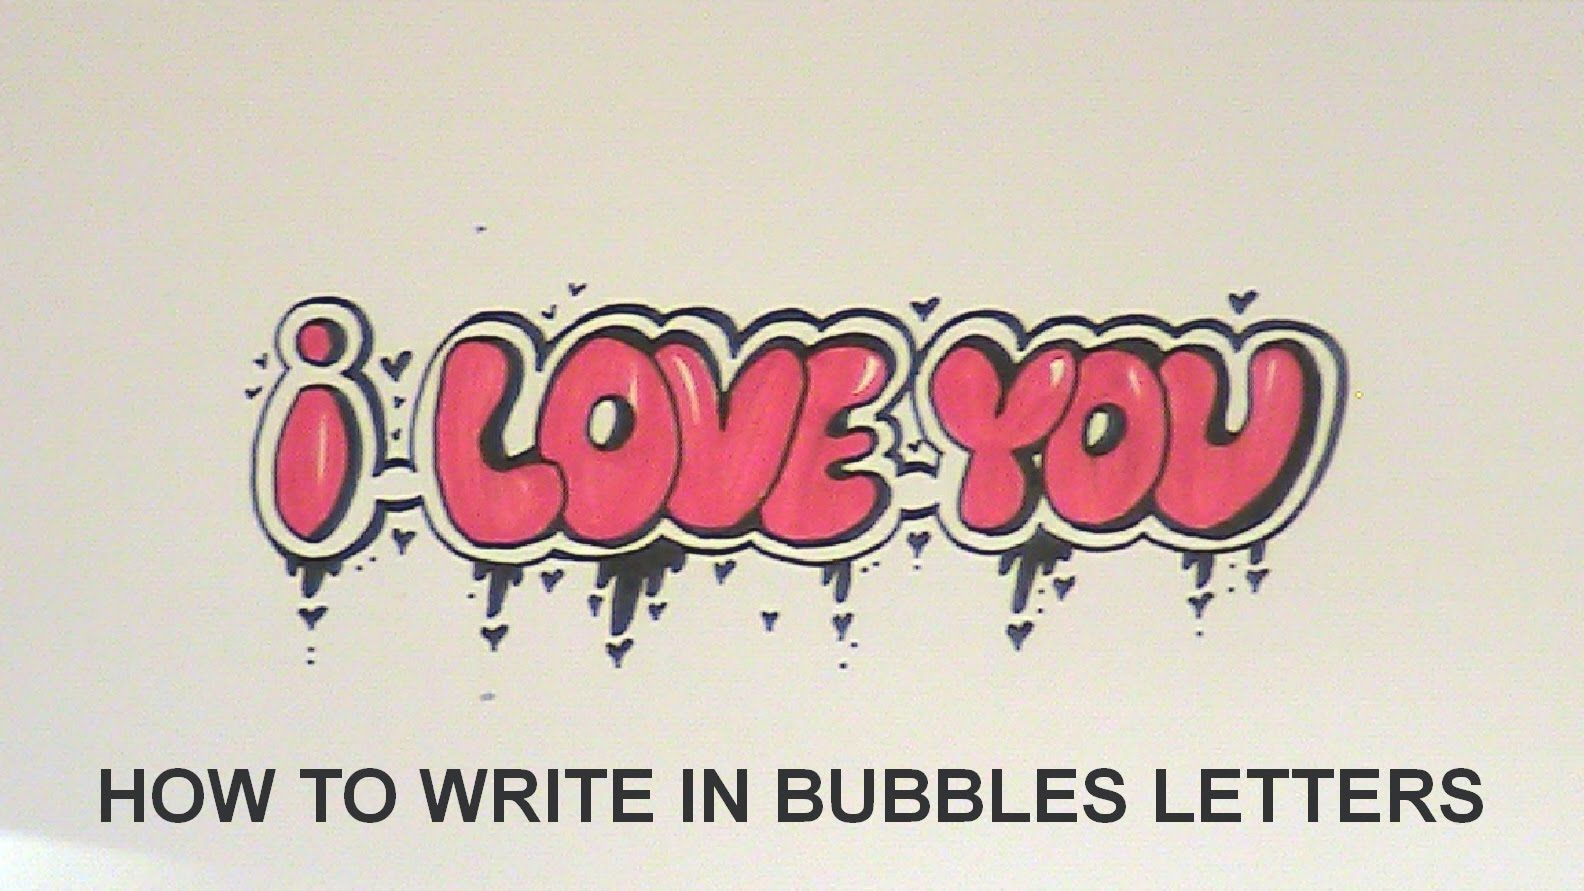 How to write in bubbles letters i love you easy version how to write in bubbles letters i love you easy version thecheapjerseys Images